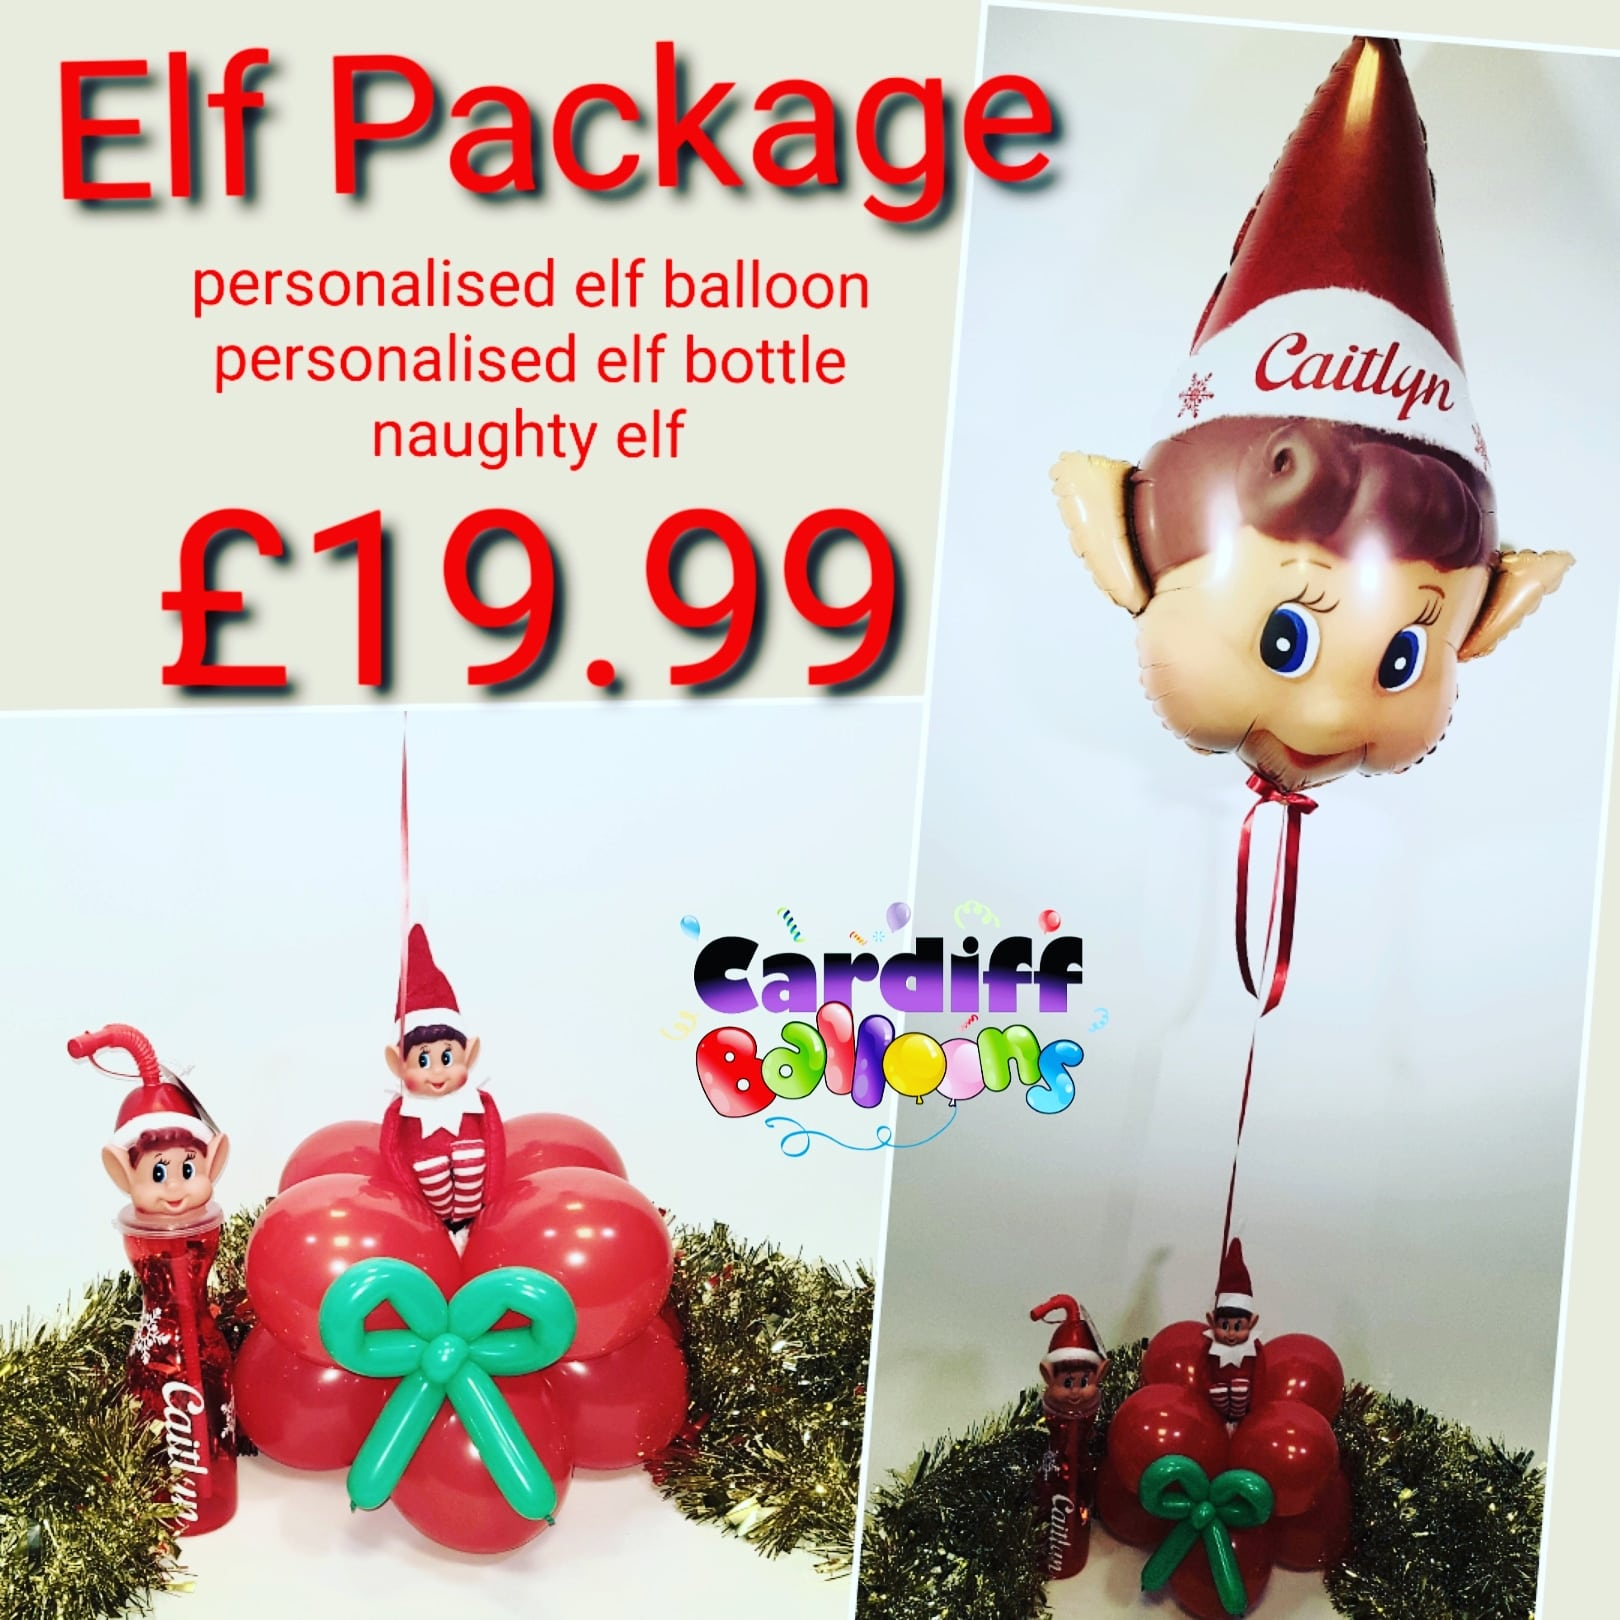 Elf Arrival Package From www.cardiffballoons.co.uk